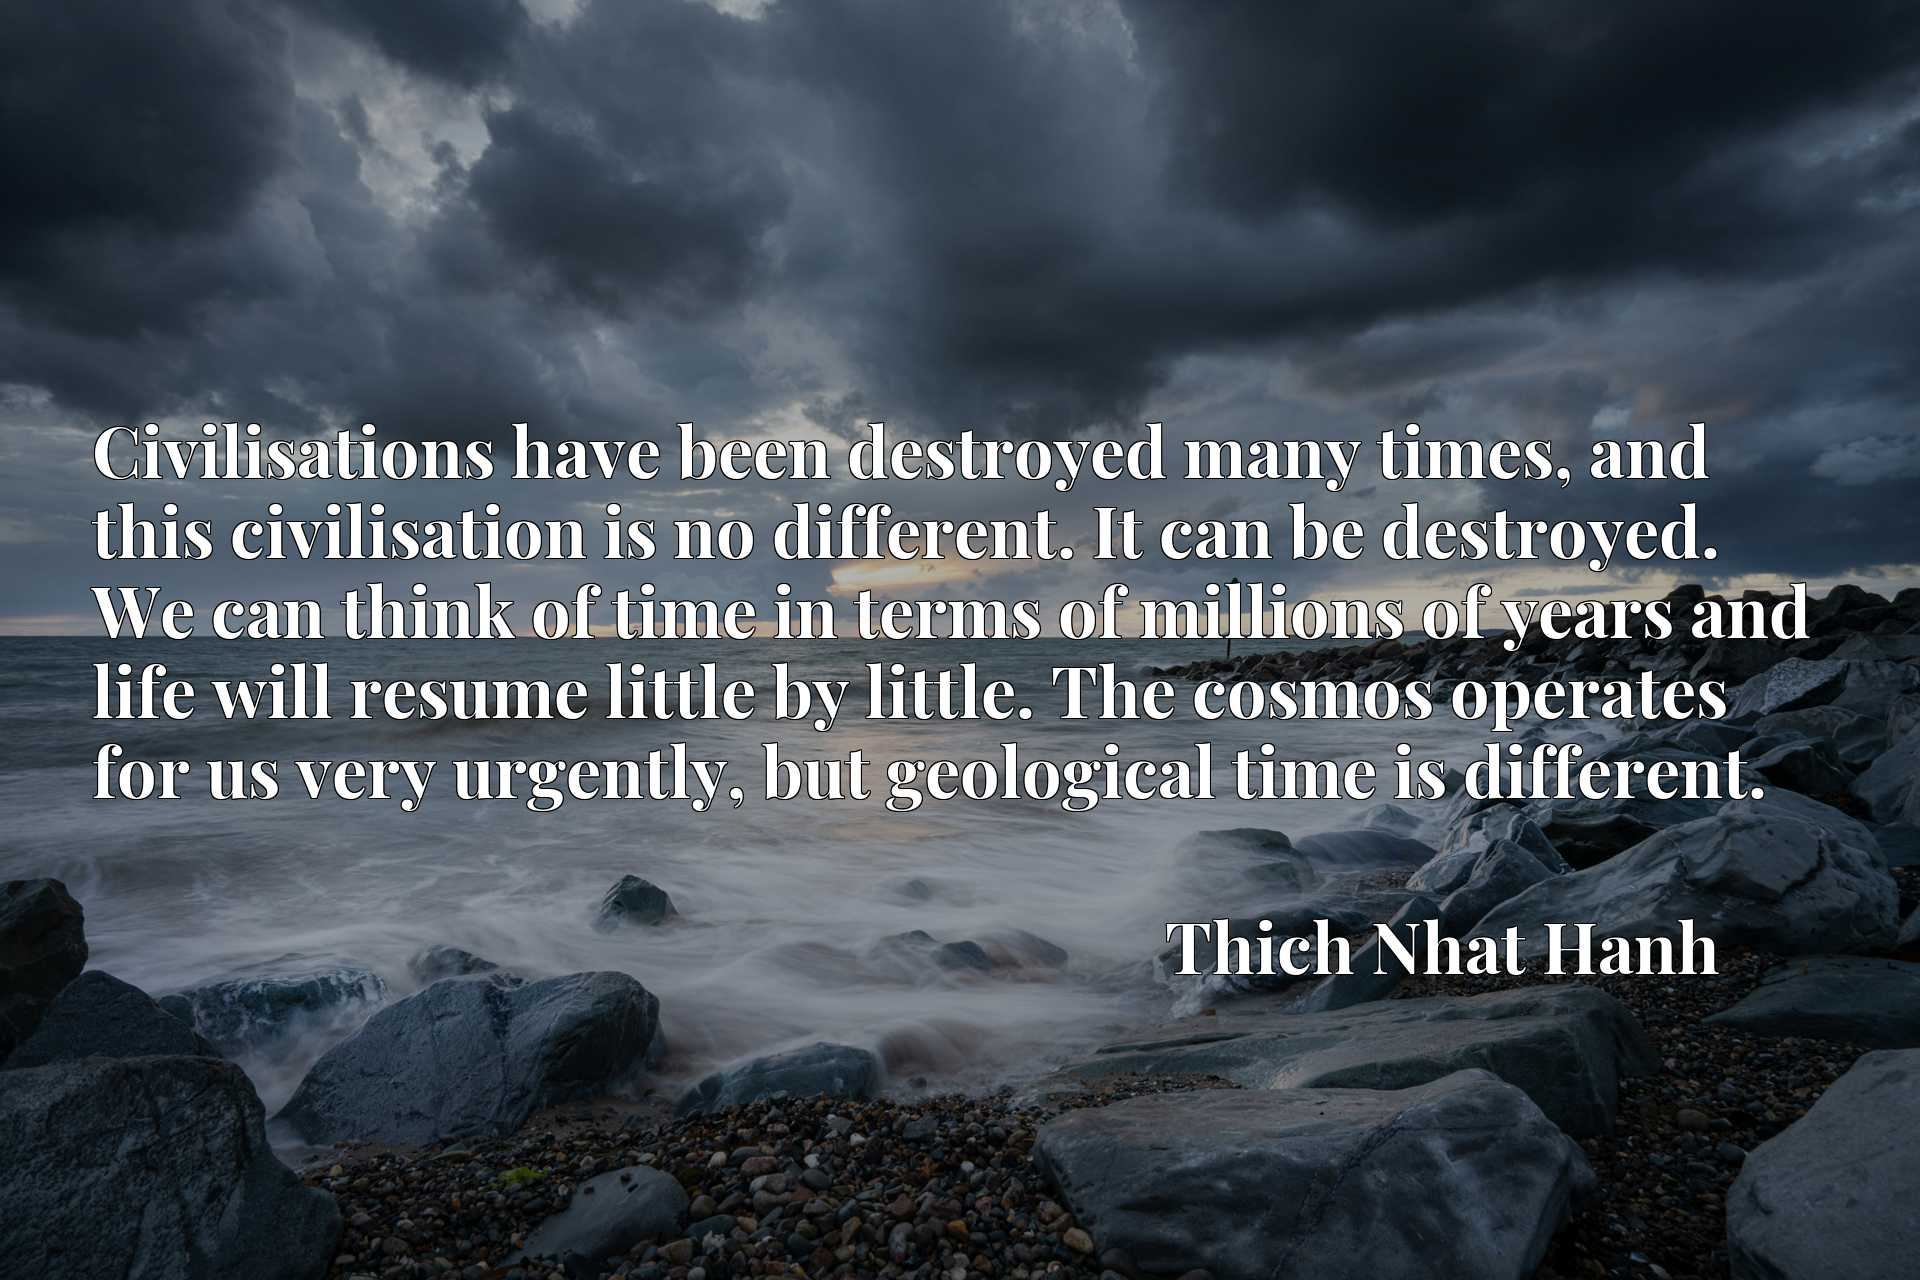 Civilisations have been destroyed many times, and this civilisation is no different. It can be destroyed. We can think of time in terms of millions of years and life will resume little by little. The cosmos operates for us very urgently, but geological time is different.